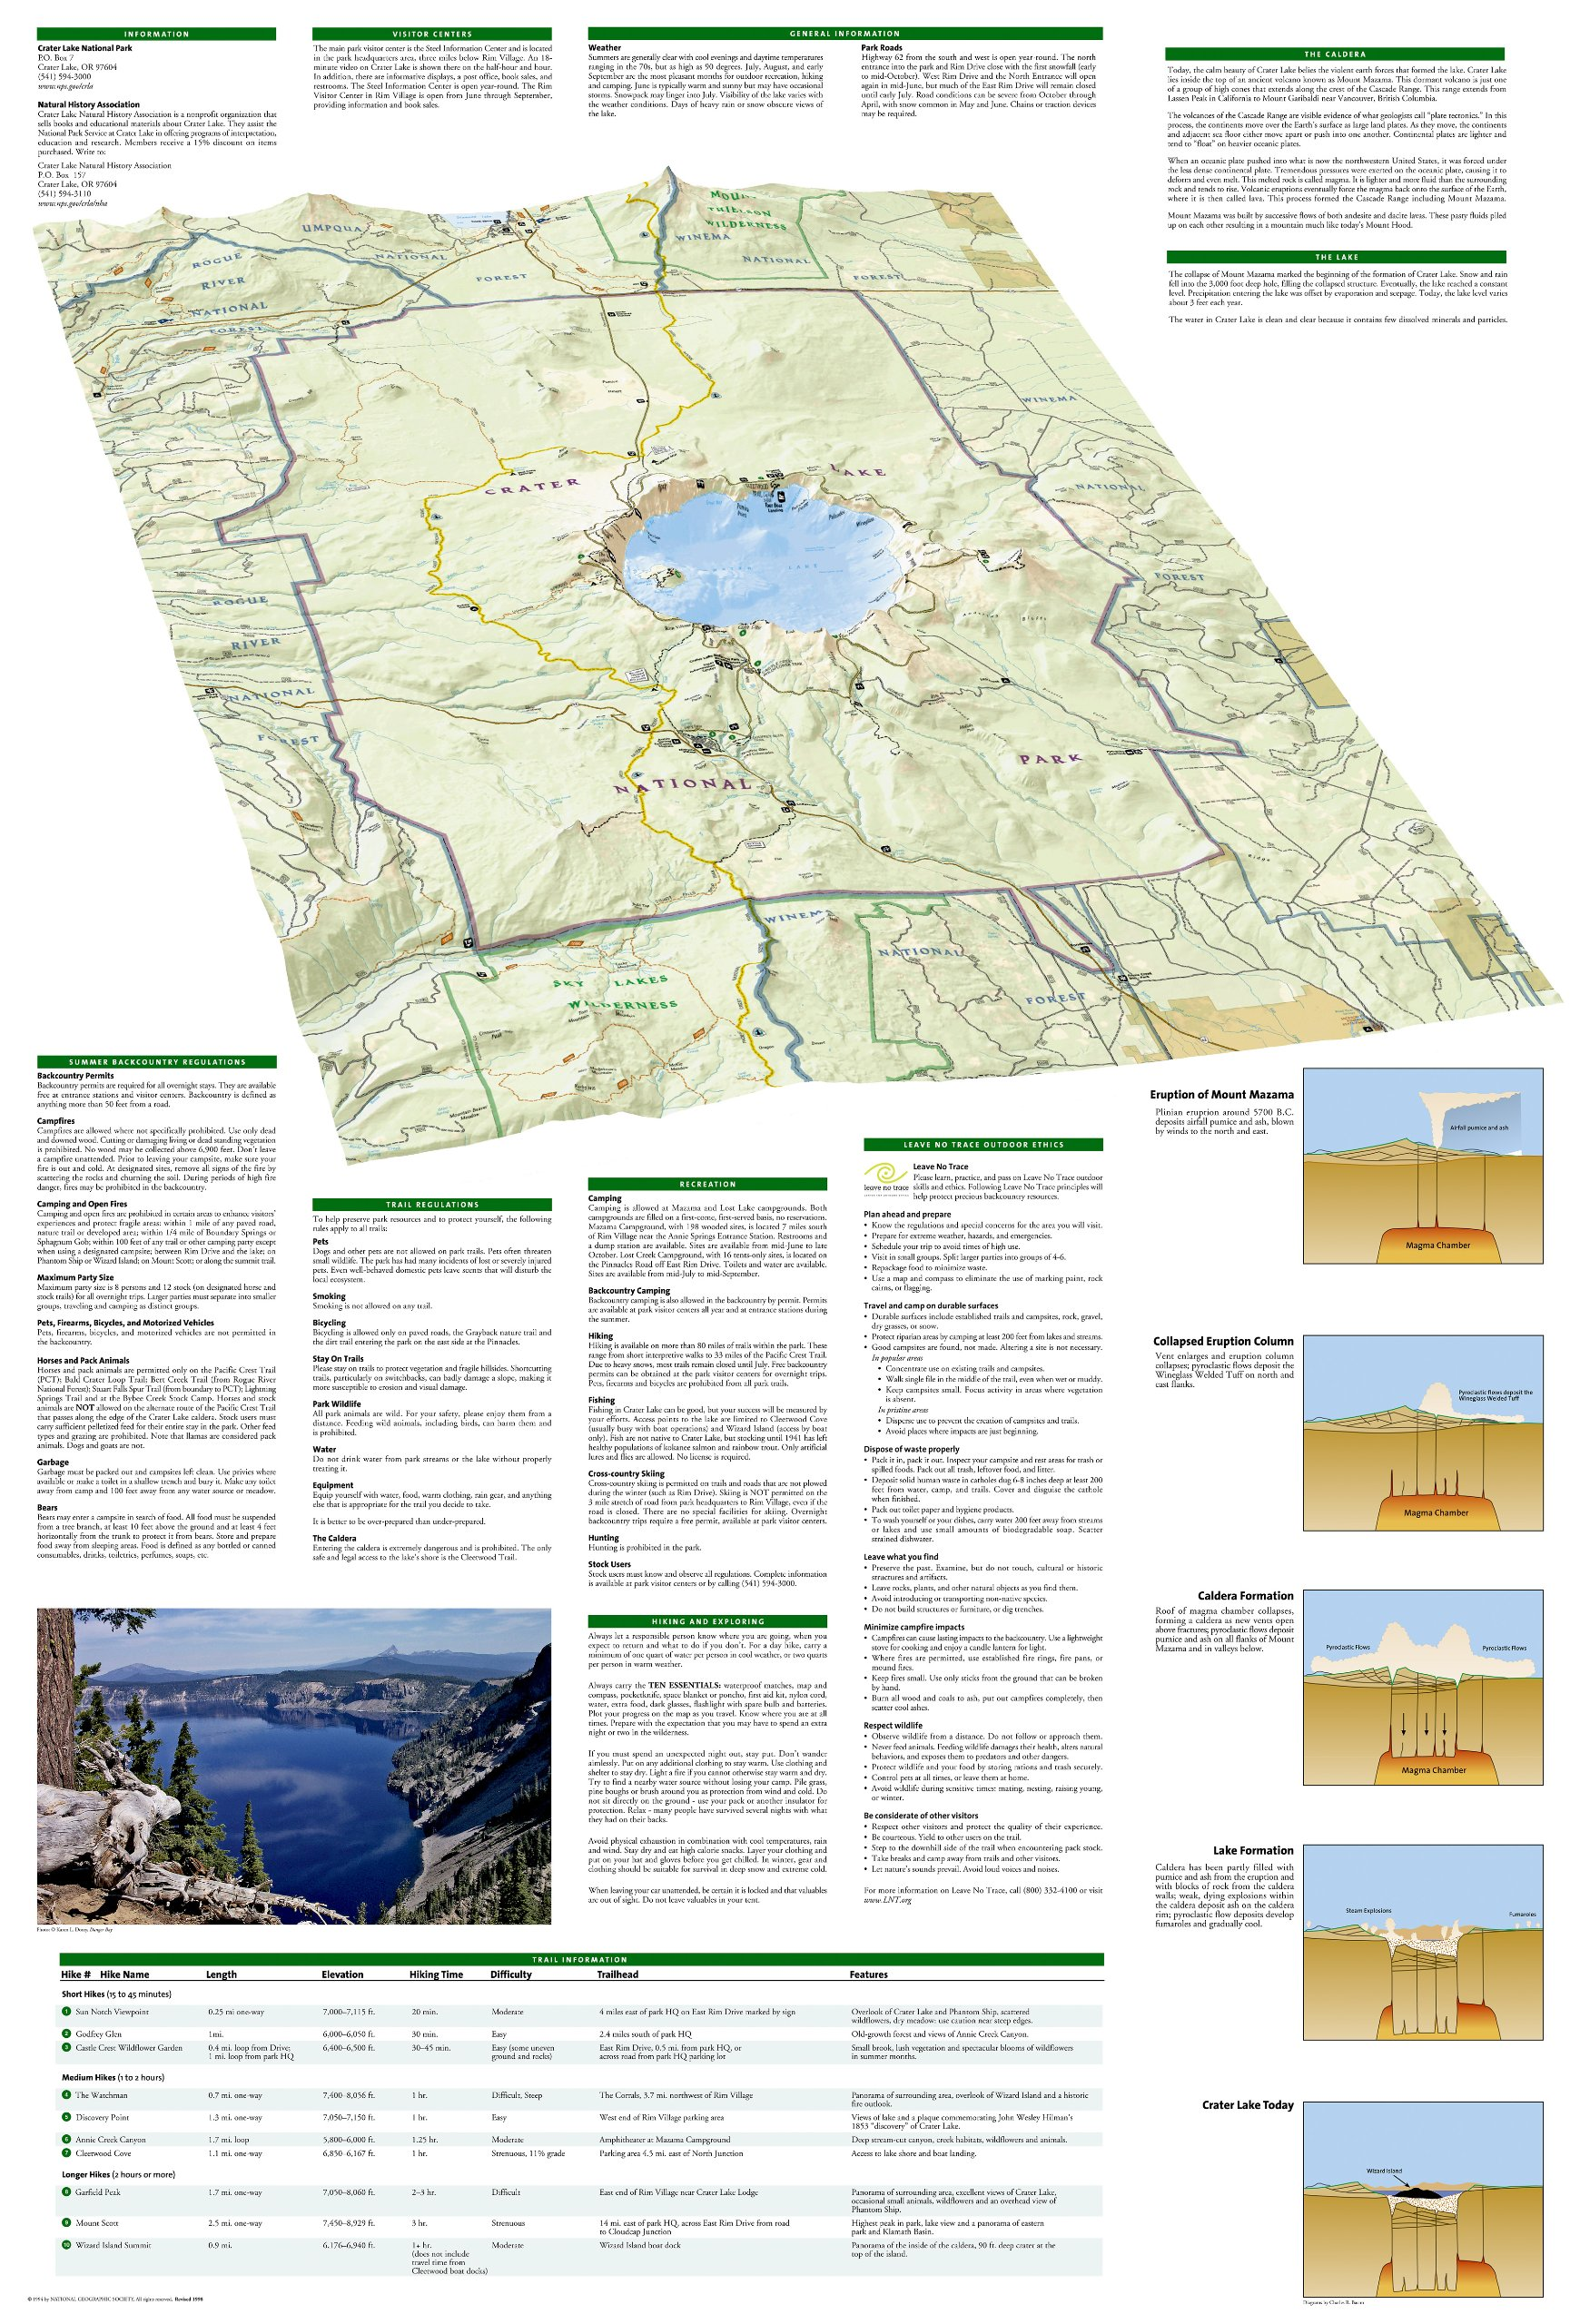 Crater Lake National Park National Geographic Trails Illustrated